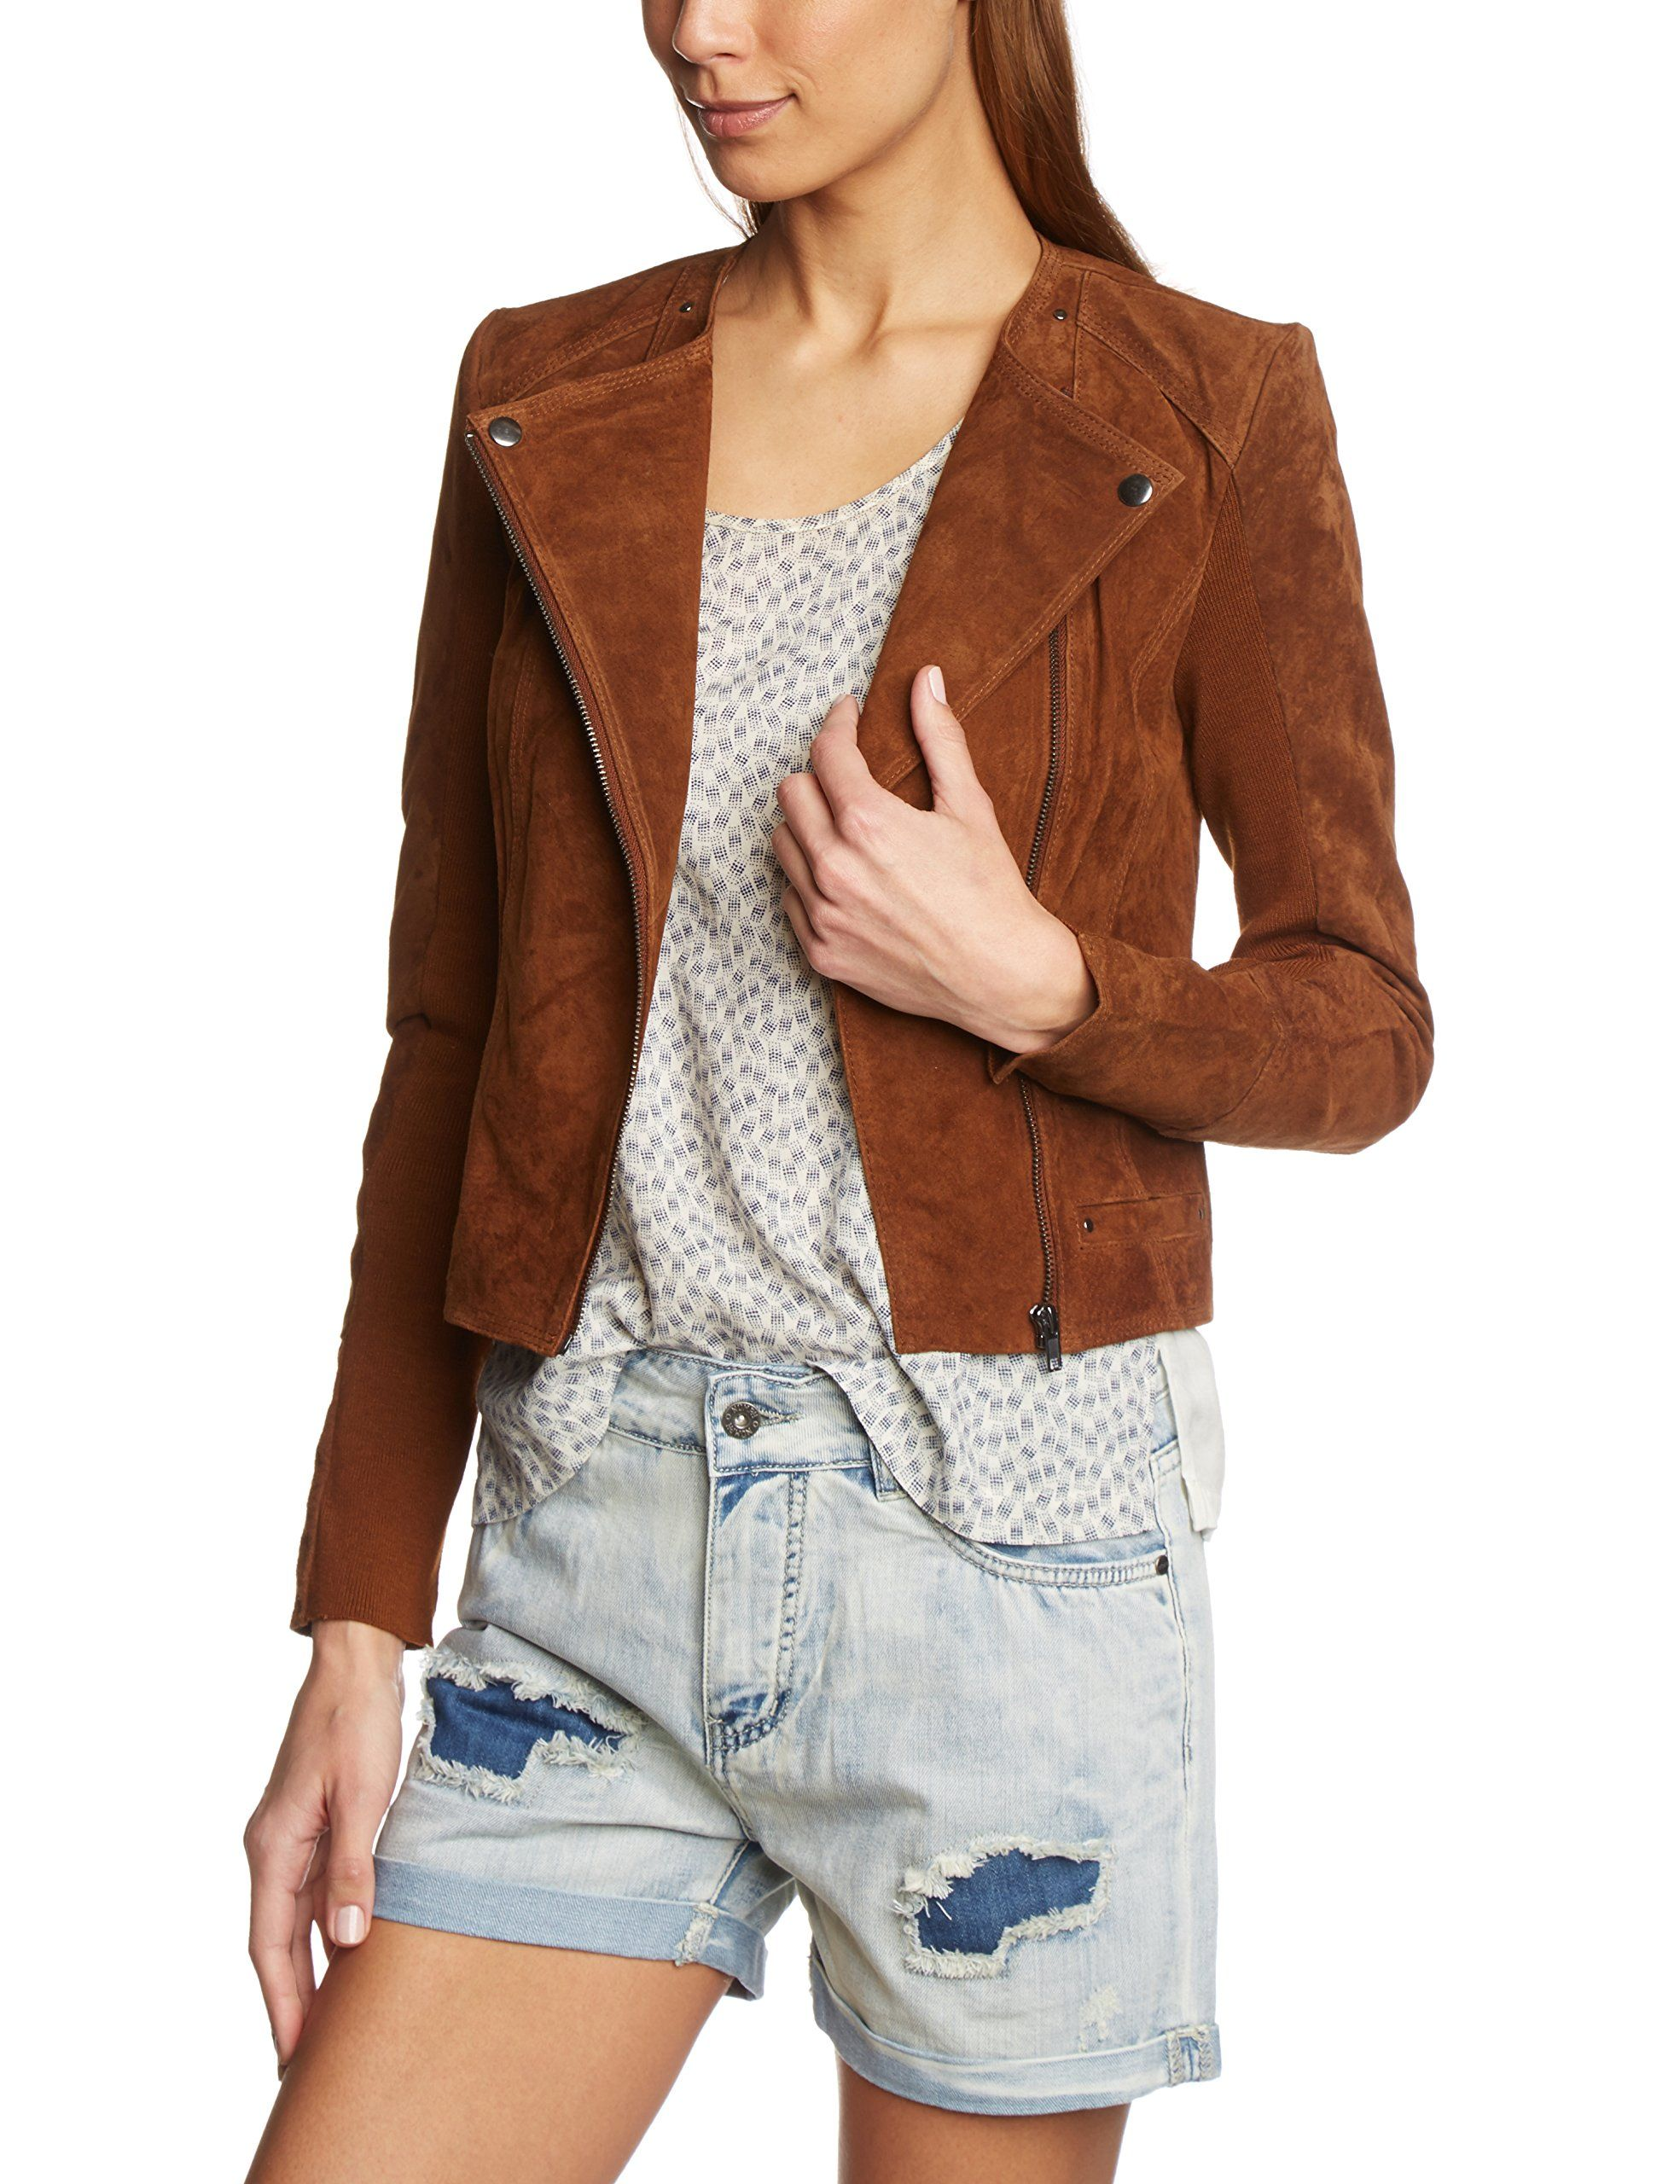 vero moda damen lederjacke vmforever short suede slim jacket gr 40 herstellergr e l braun. Black Bedroom Furniture Sets. Home Design Ideas